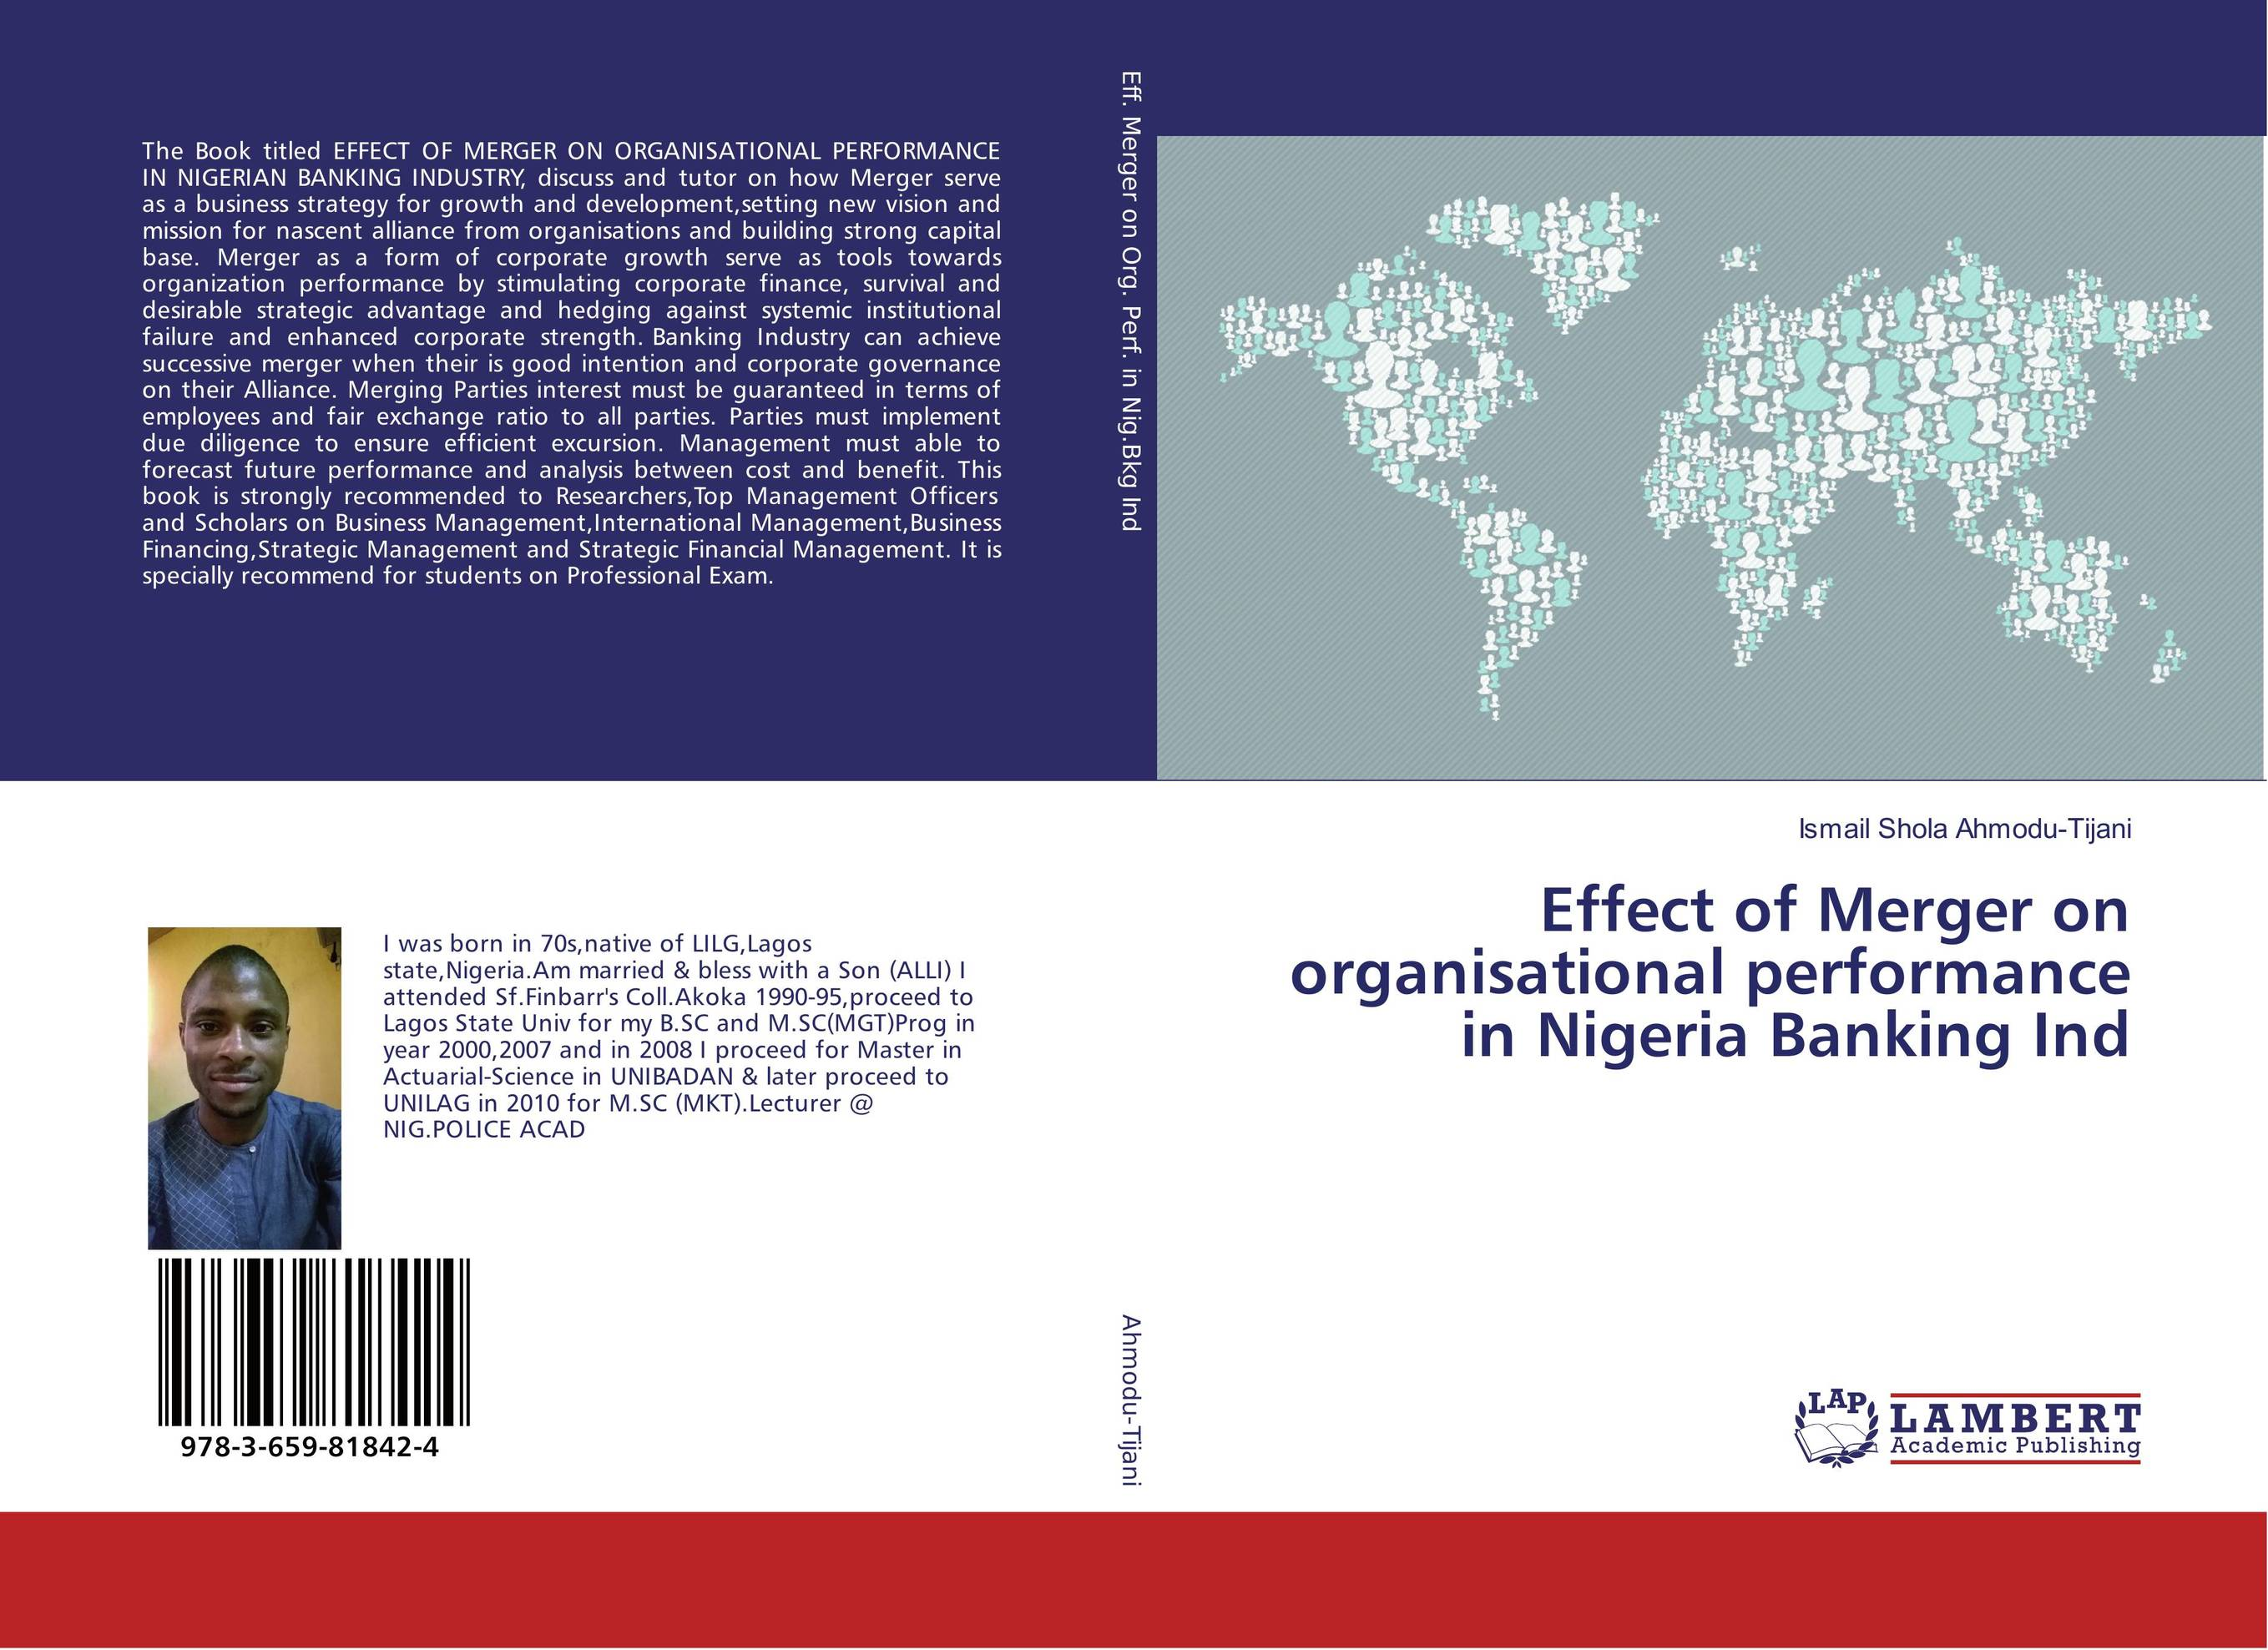 Effect of Merger on organisational performance in Nigeria Banking Ind corporate performance management